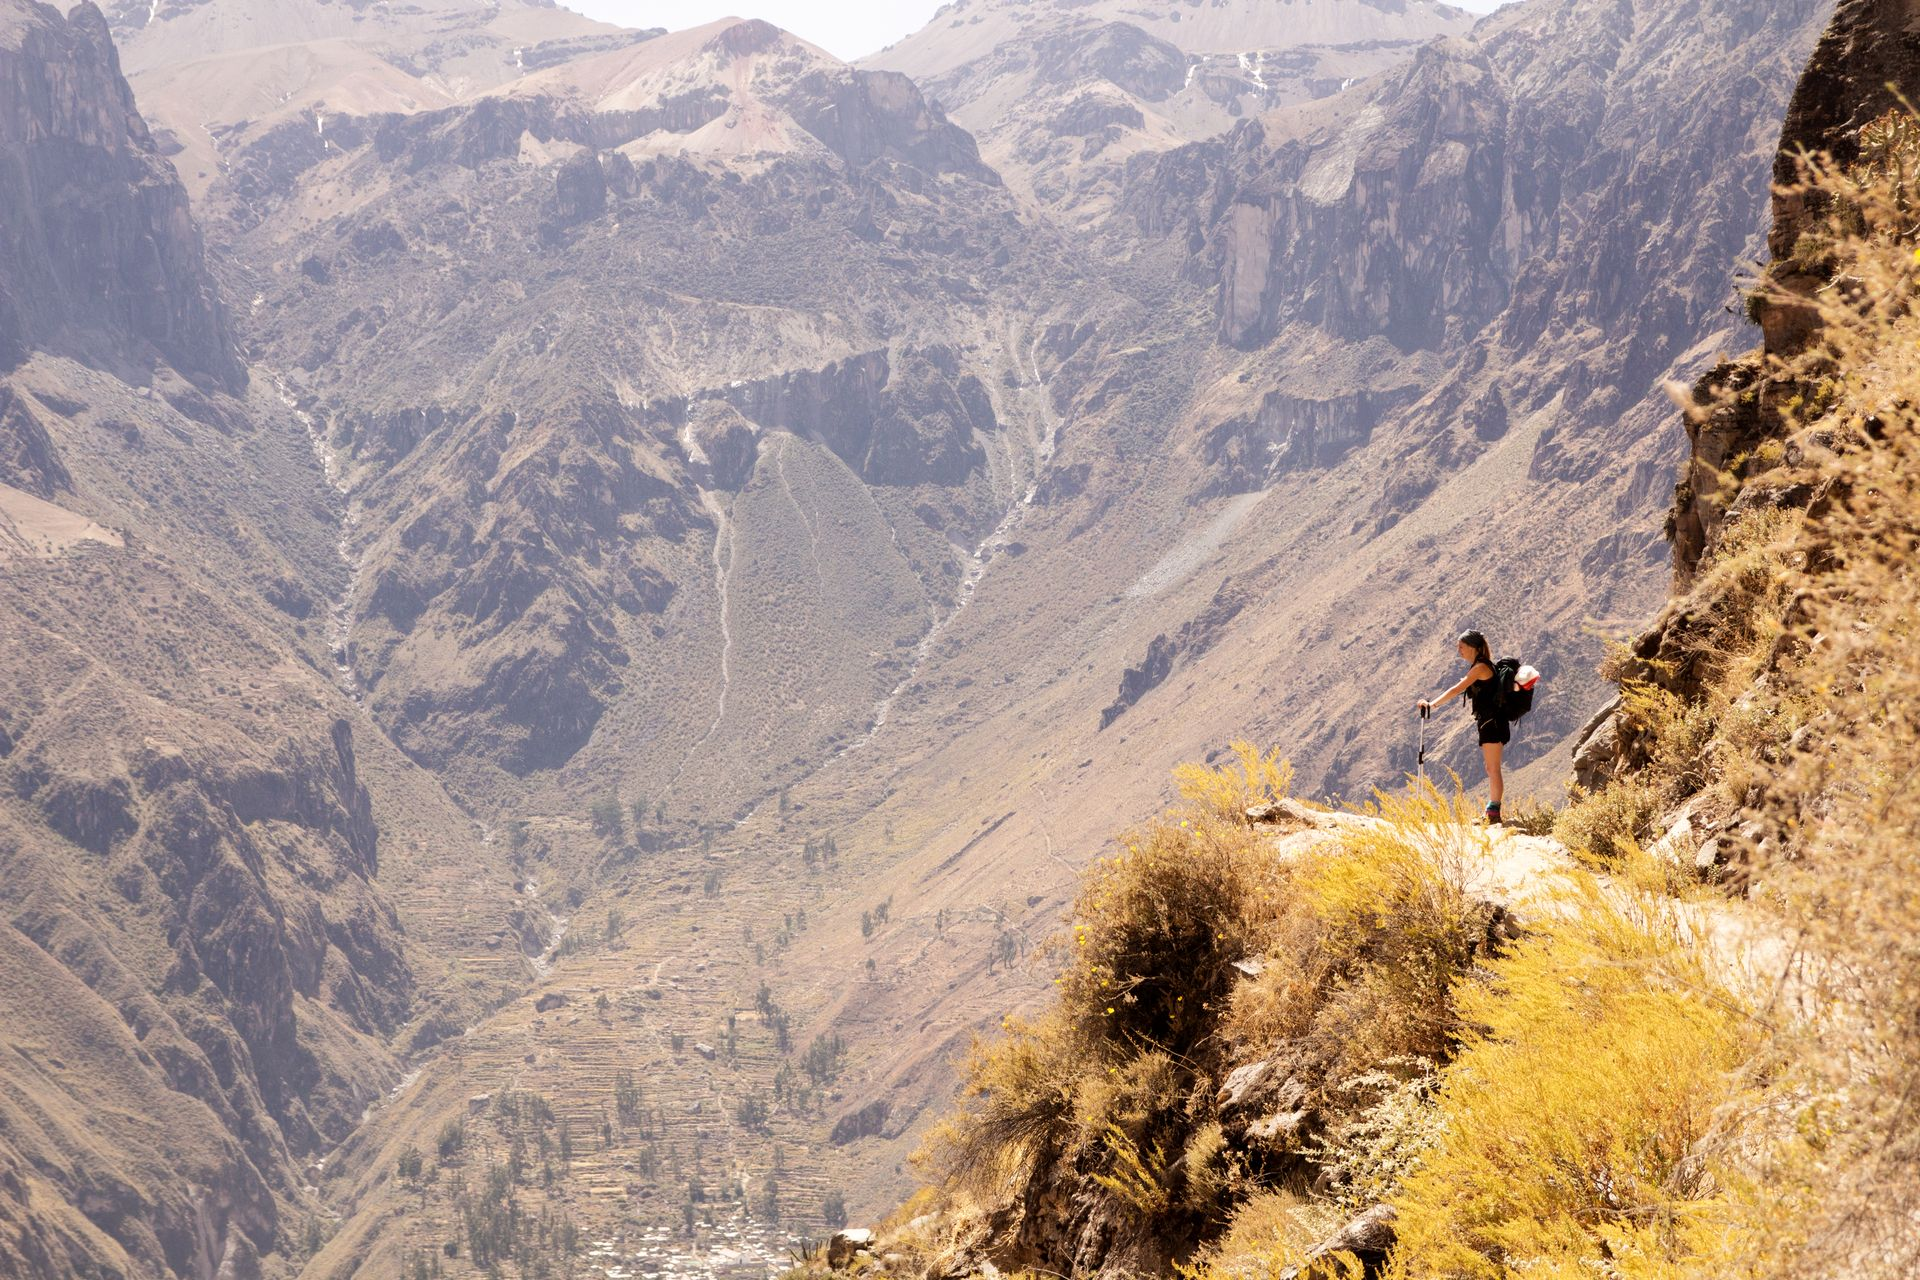 Trekking in the Colca Canyon